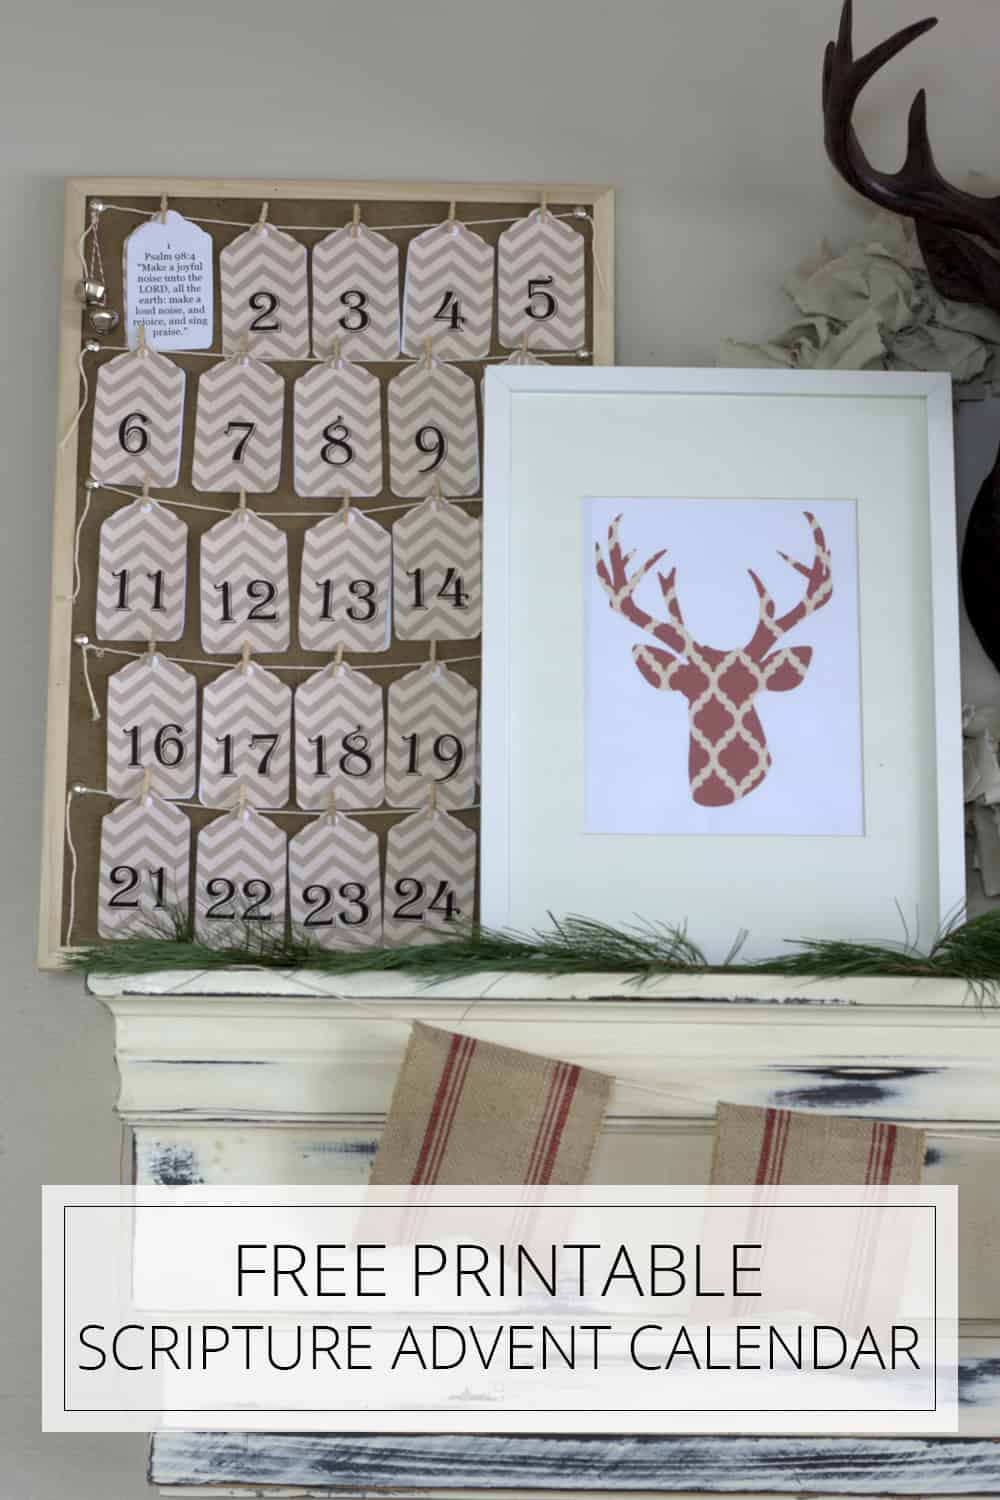 free printable scripture advent calendar